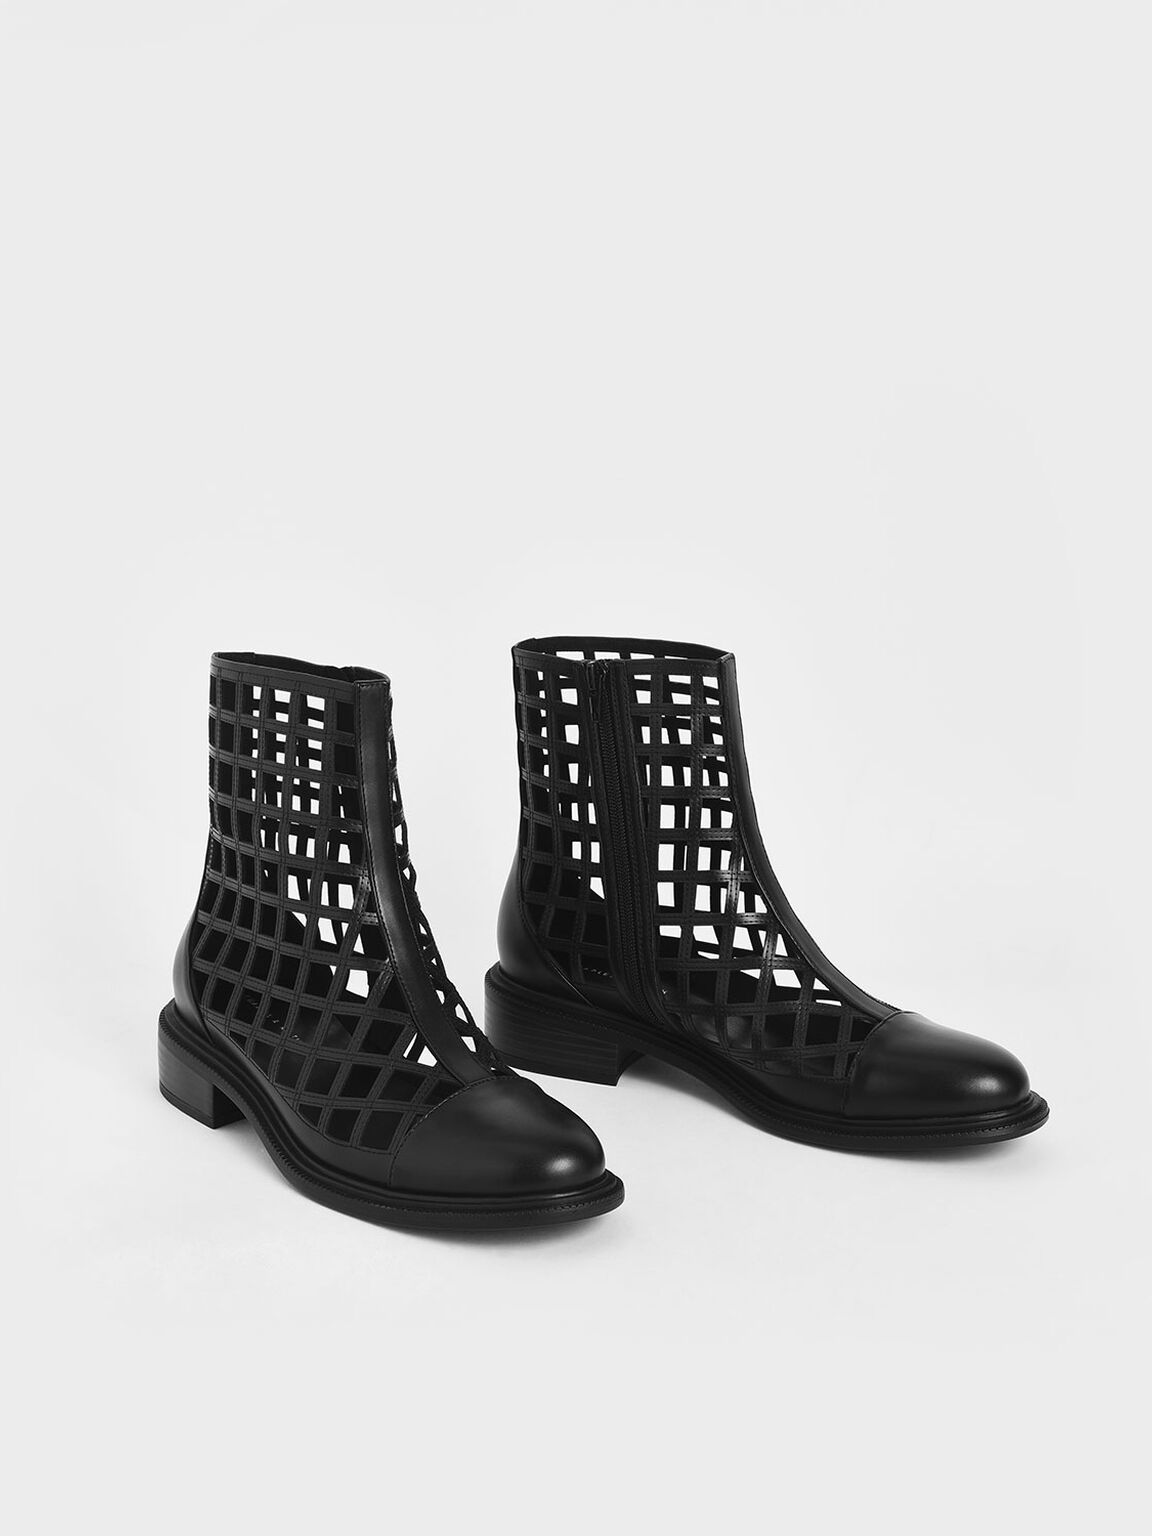 Caged Ankle Boots, Black, hi-res